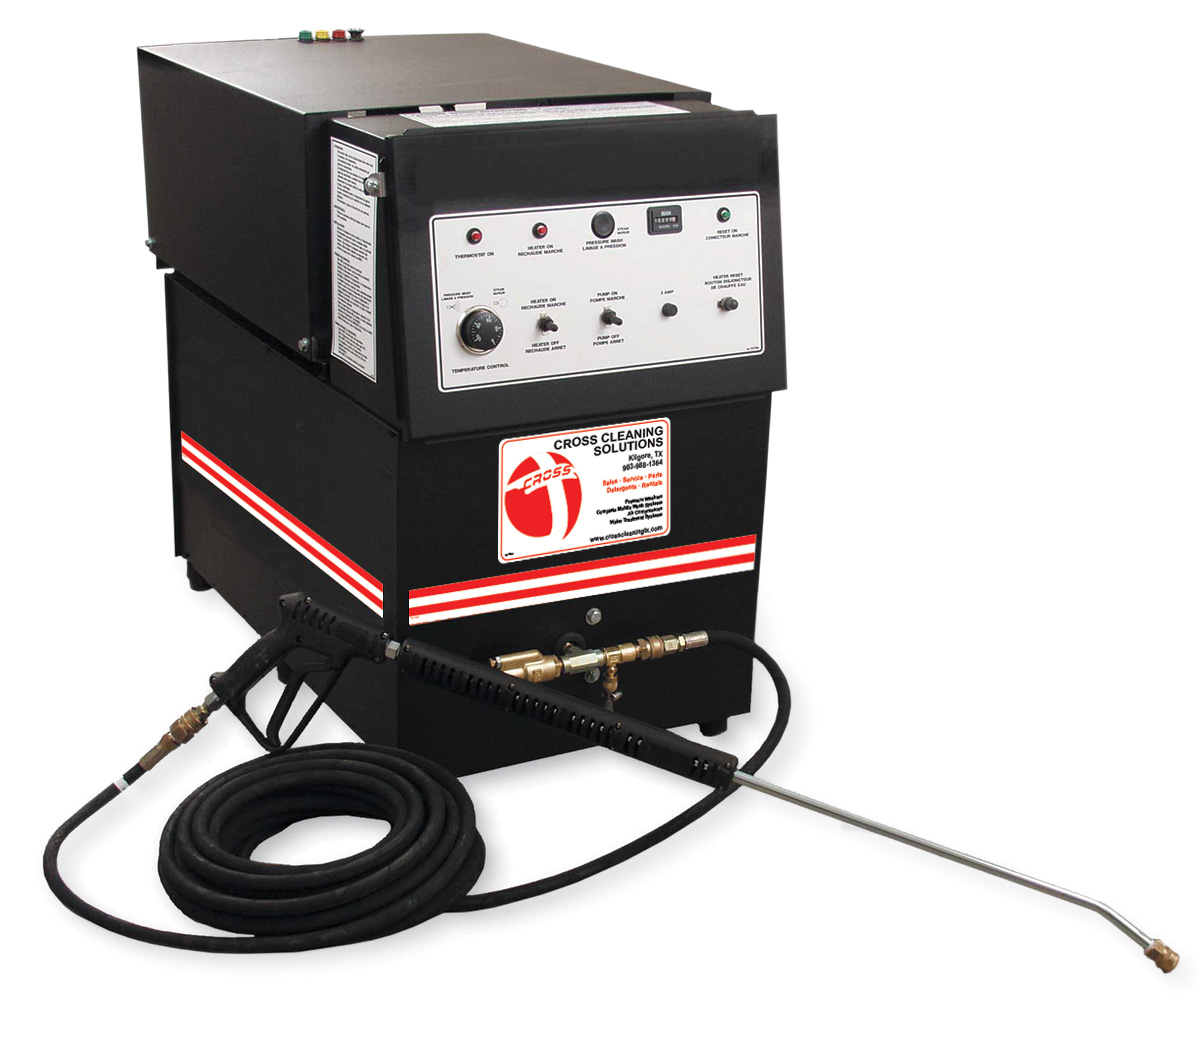 EH & HLP Series Electric Belt Drive Stationary Hot Water Pressure Washers